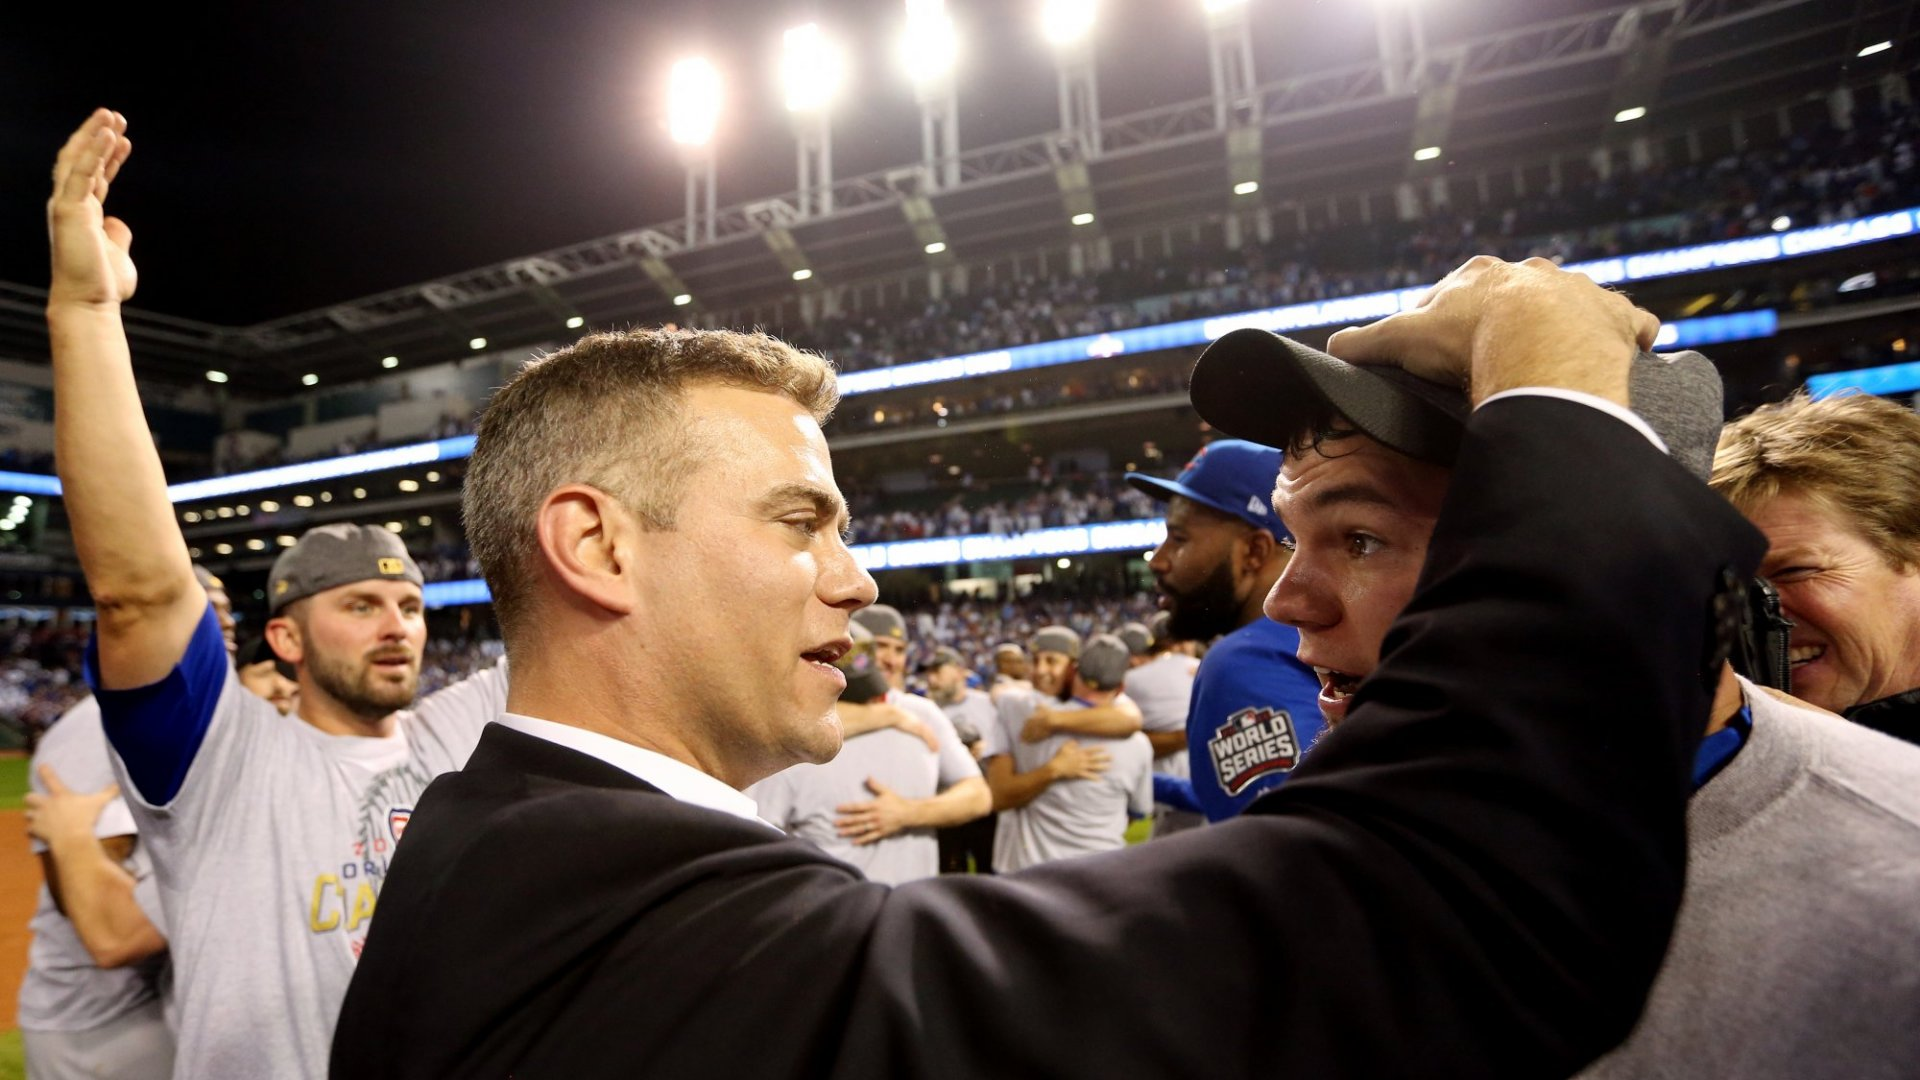 Why Baseball's Theo Epstein Might Have The Advice You Need To Survive A Bad Career Rut